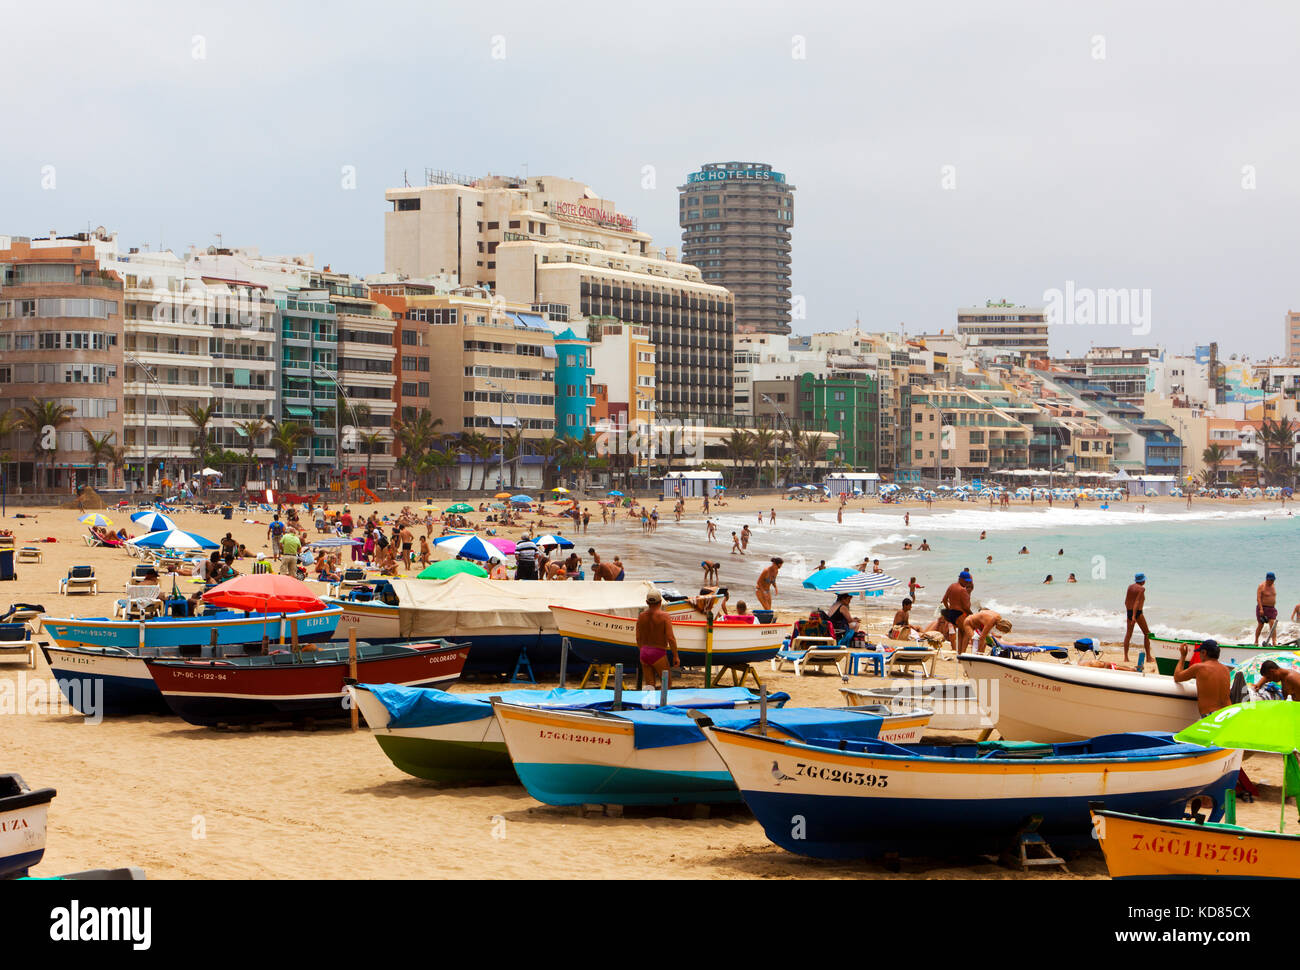 Las Palmas, Spain - July 1, 2011: Spanish families and tourists enjoying hot day at crowded beach of Las Canteras, - Stock Image